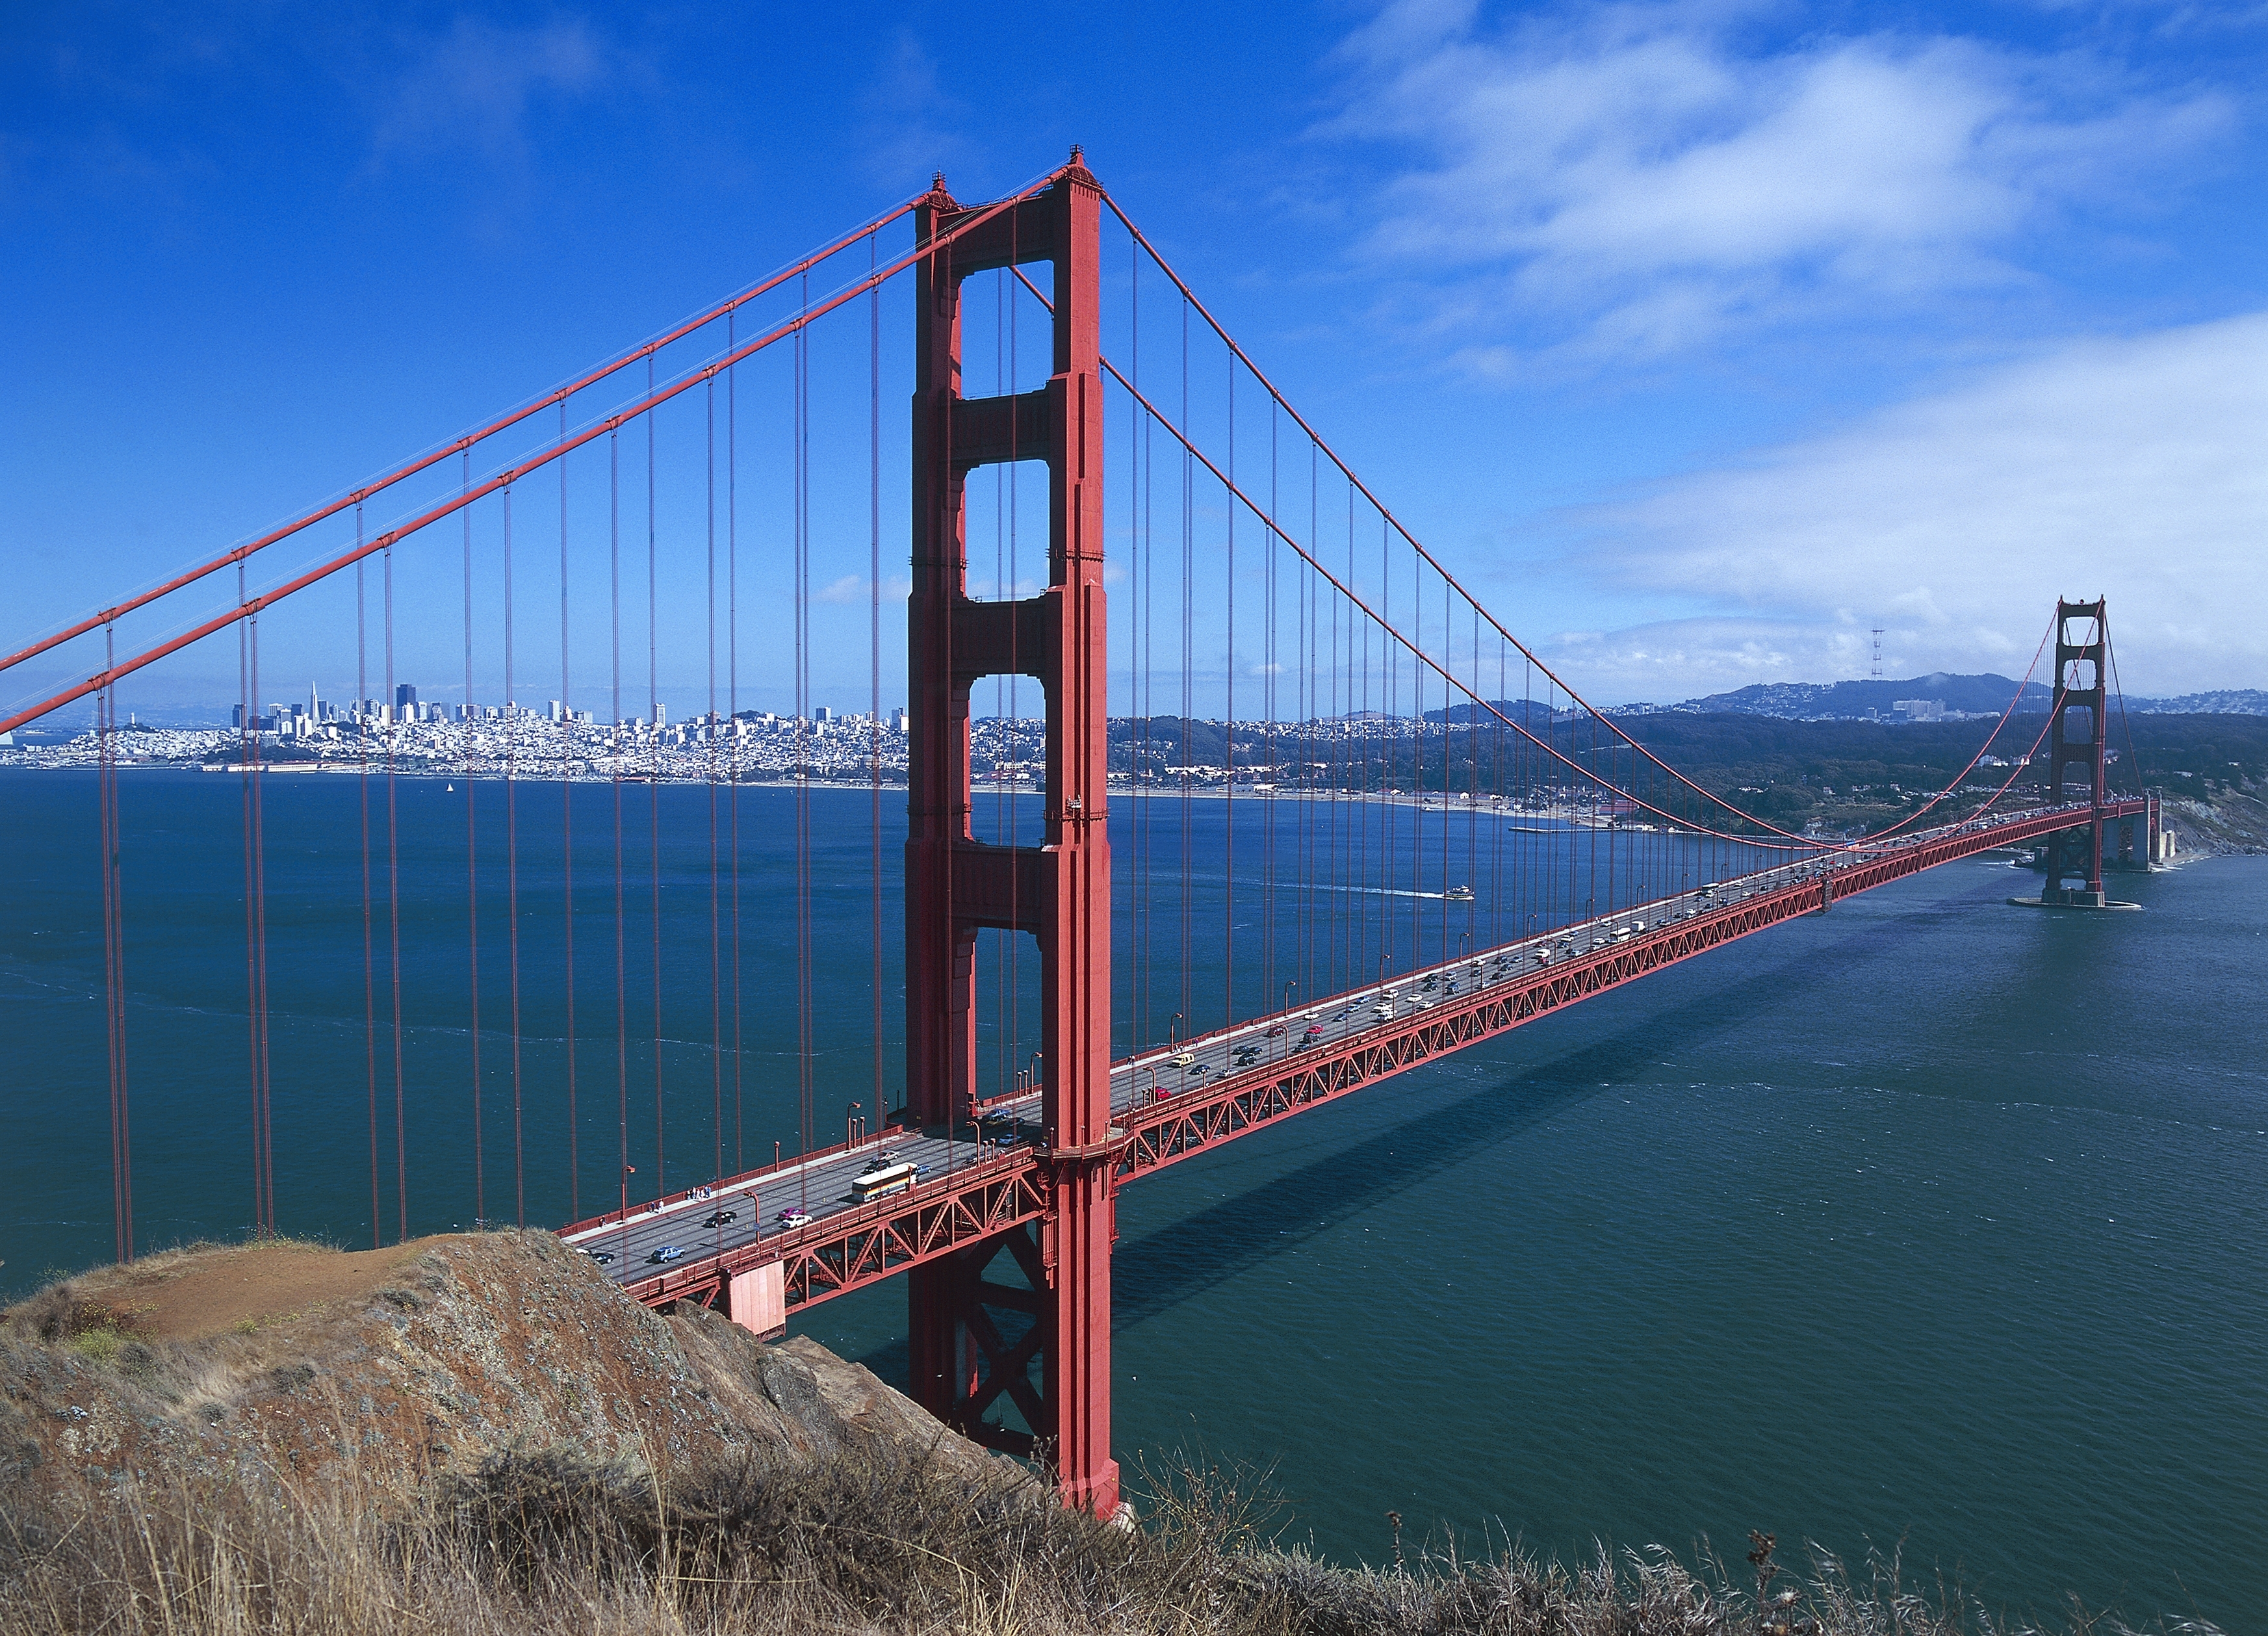 The Golden Gate Bridge by Joseph Baermann Strauss, with the bay and the city of San Francisco in the background, California, United States of America.